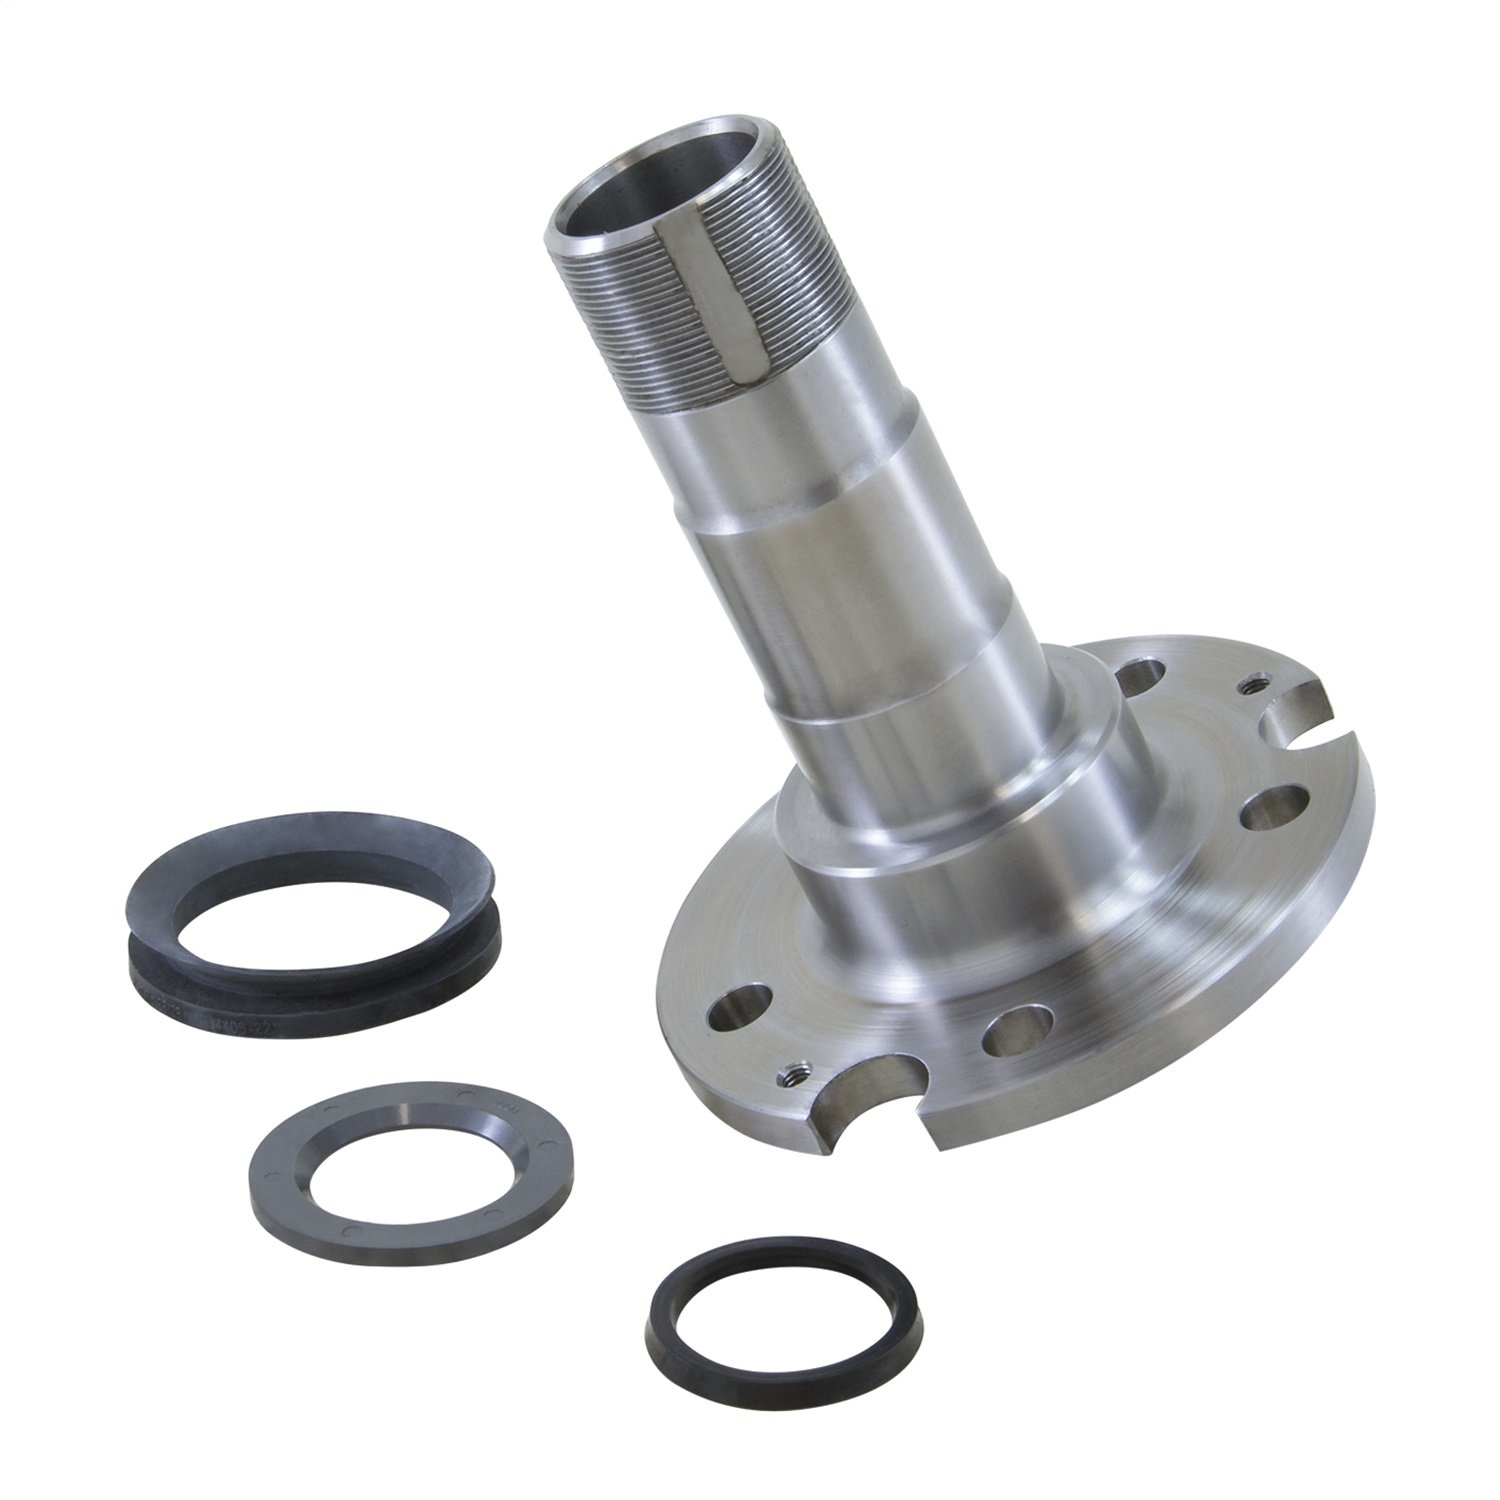 Yukon (YP SP75304) Front Replacement Spindle for Dana 44 IFS Differential with ABS by Yukon Gear